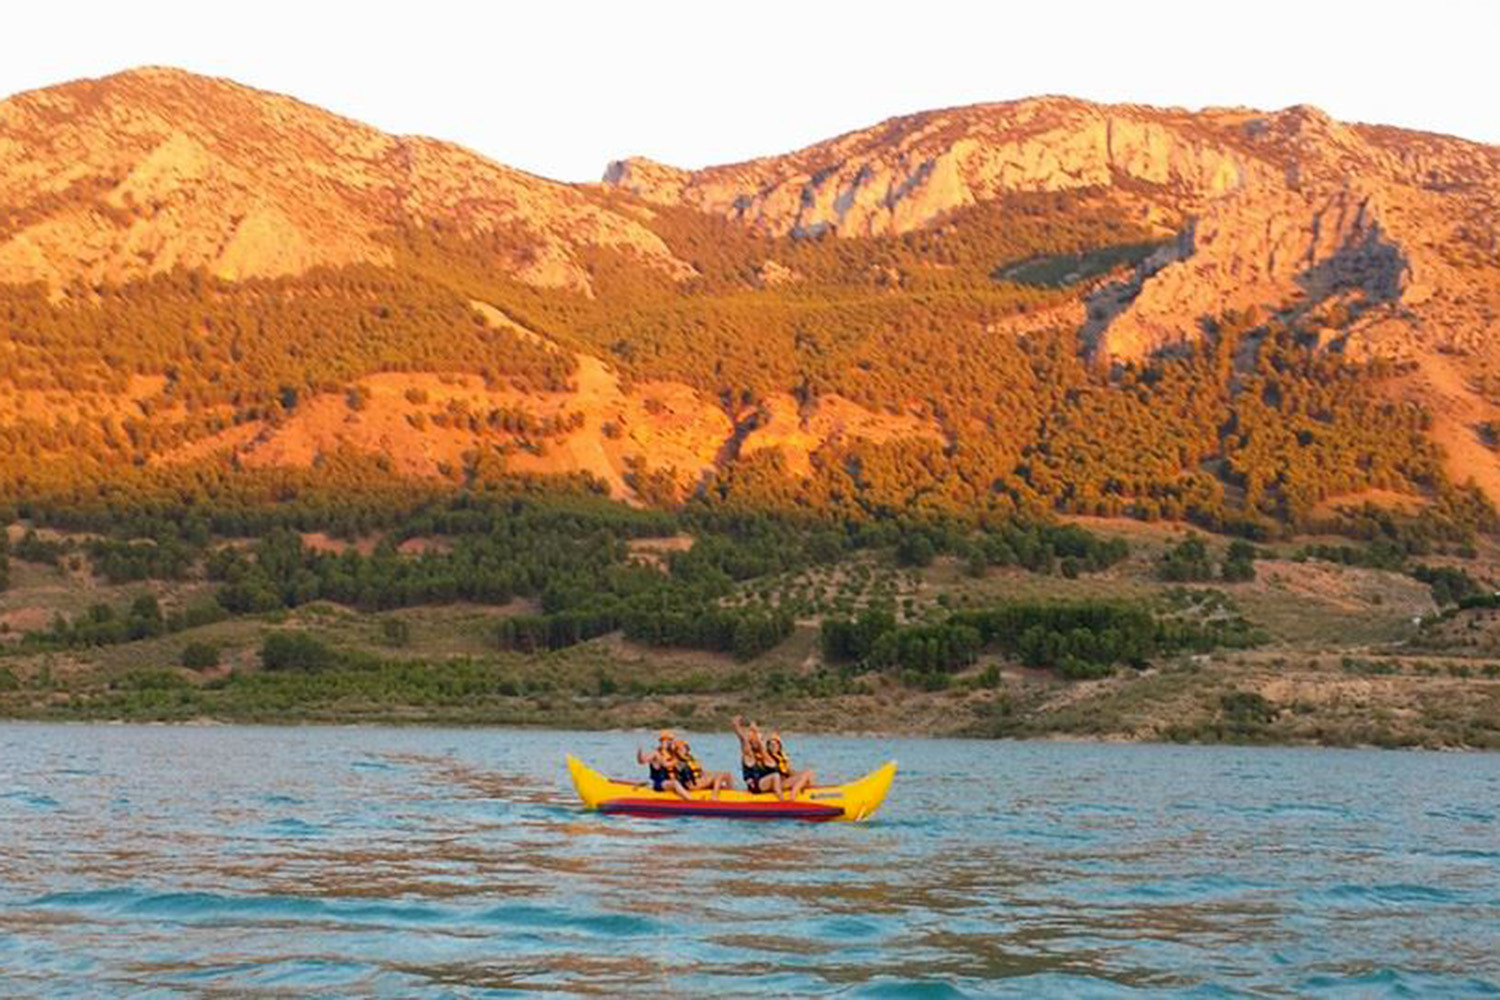 Canoeing on lake Negratin